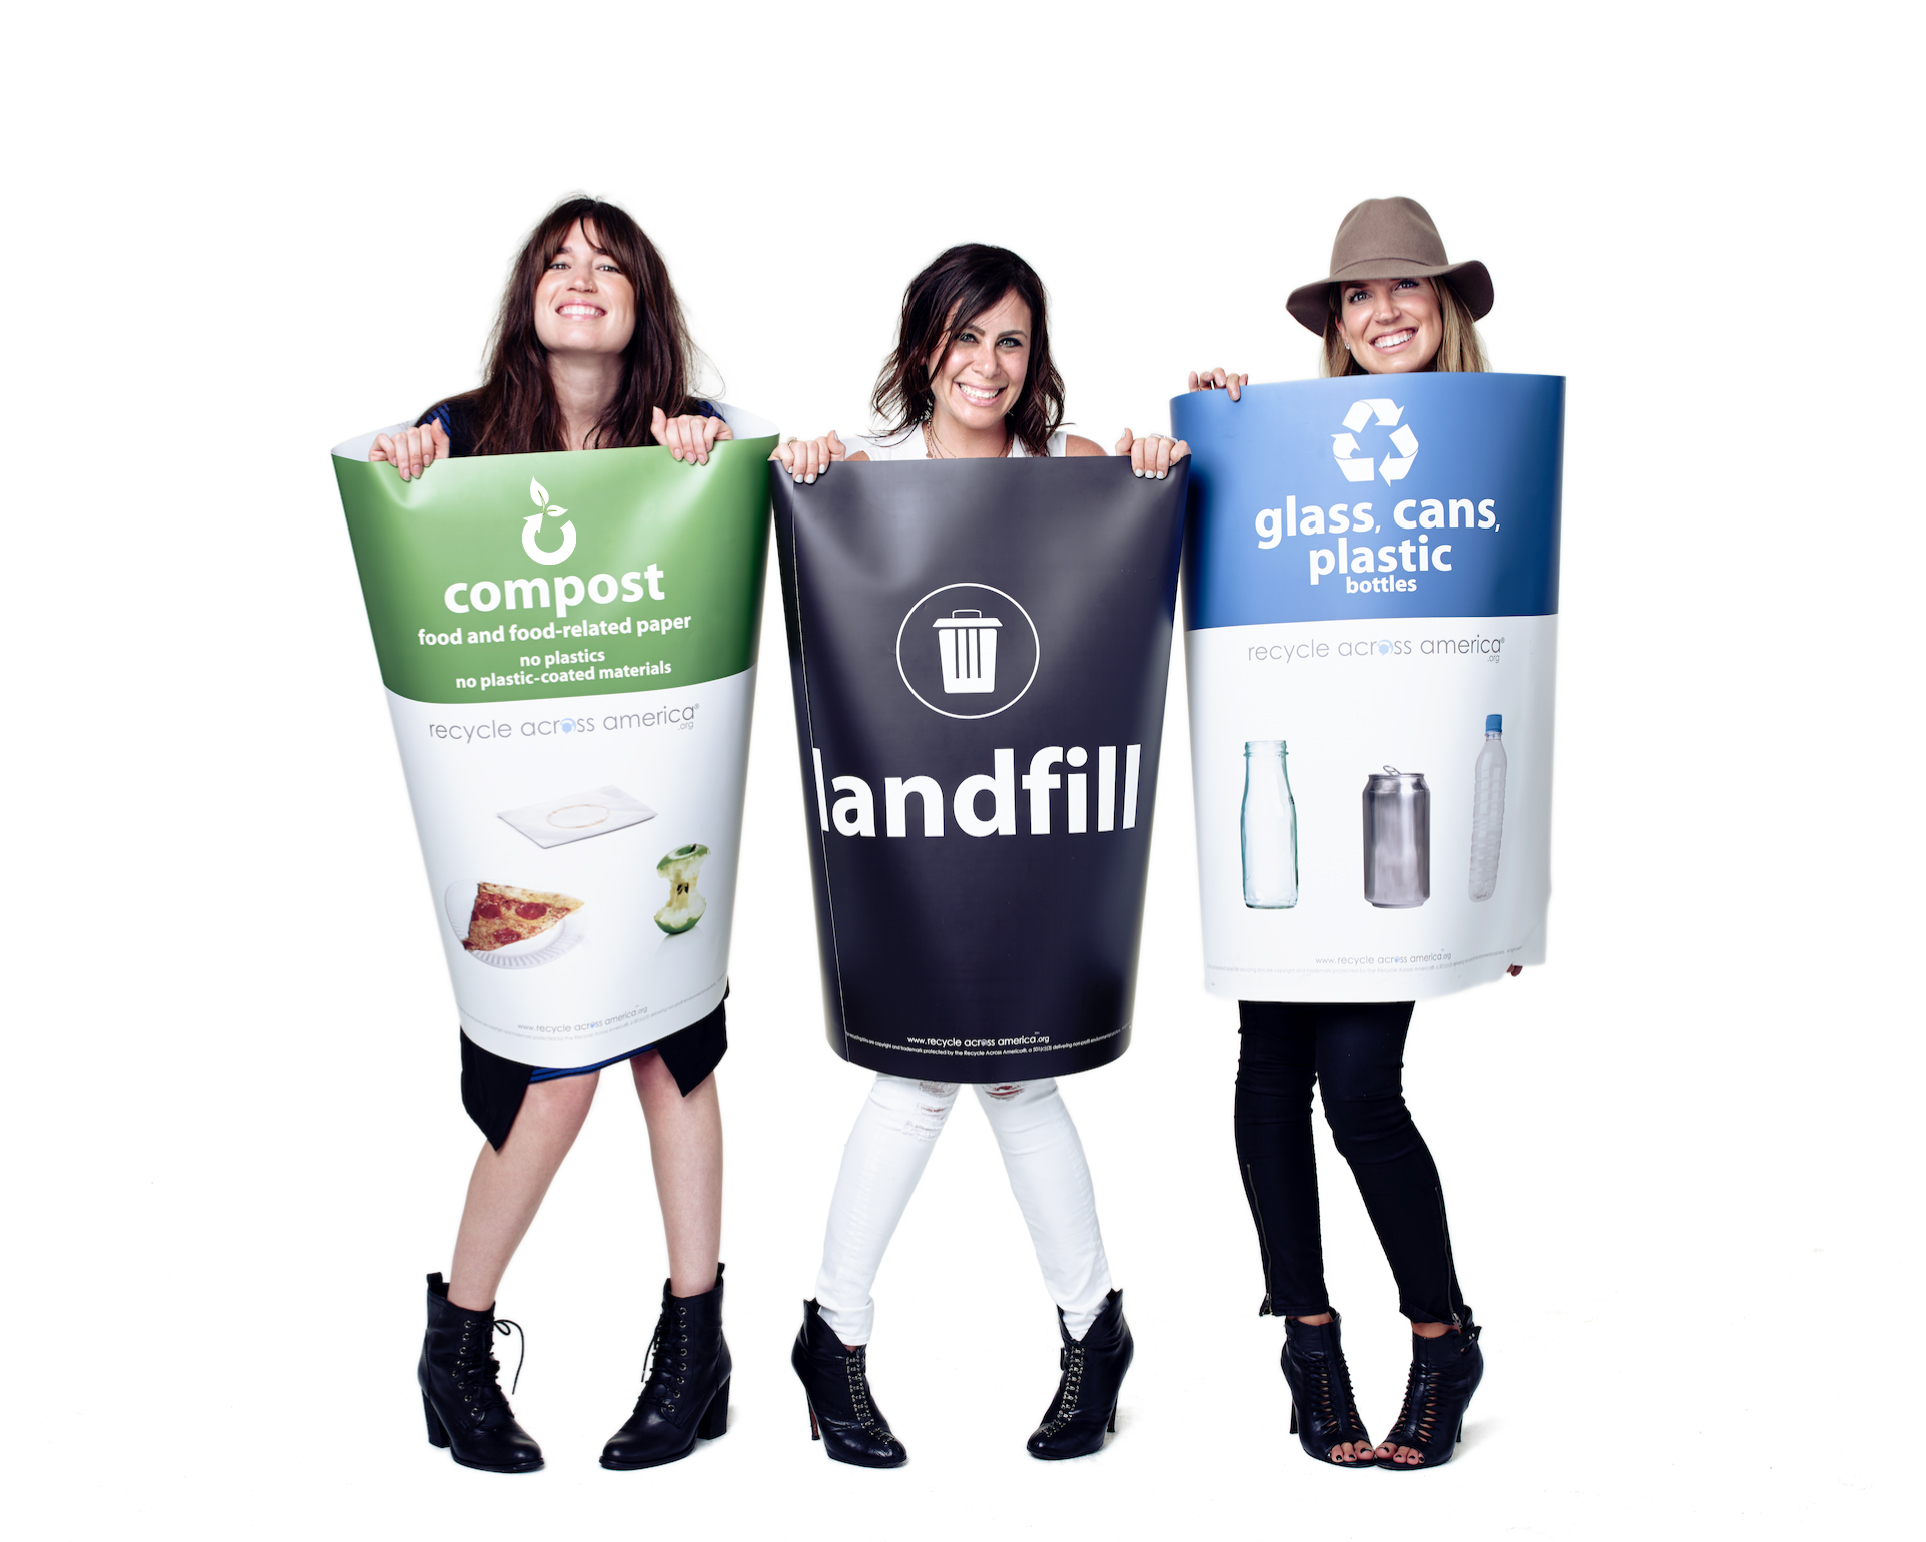 celebs with new compost